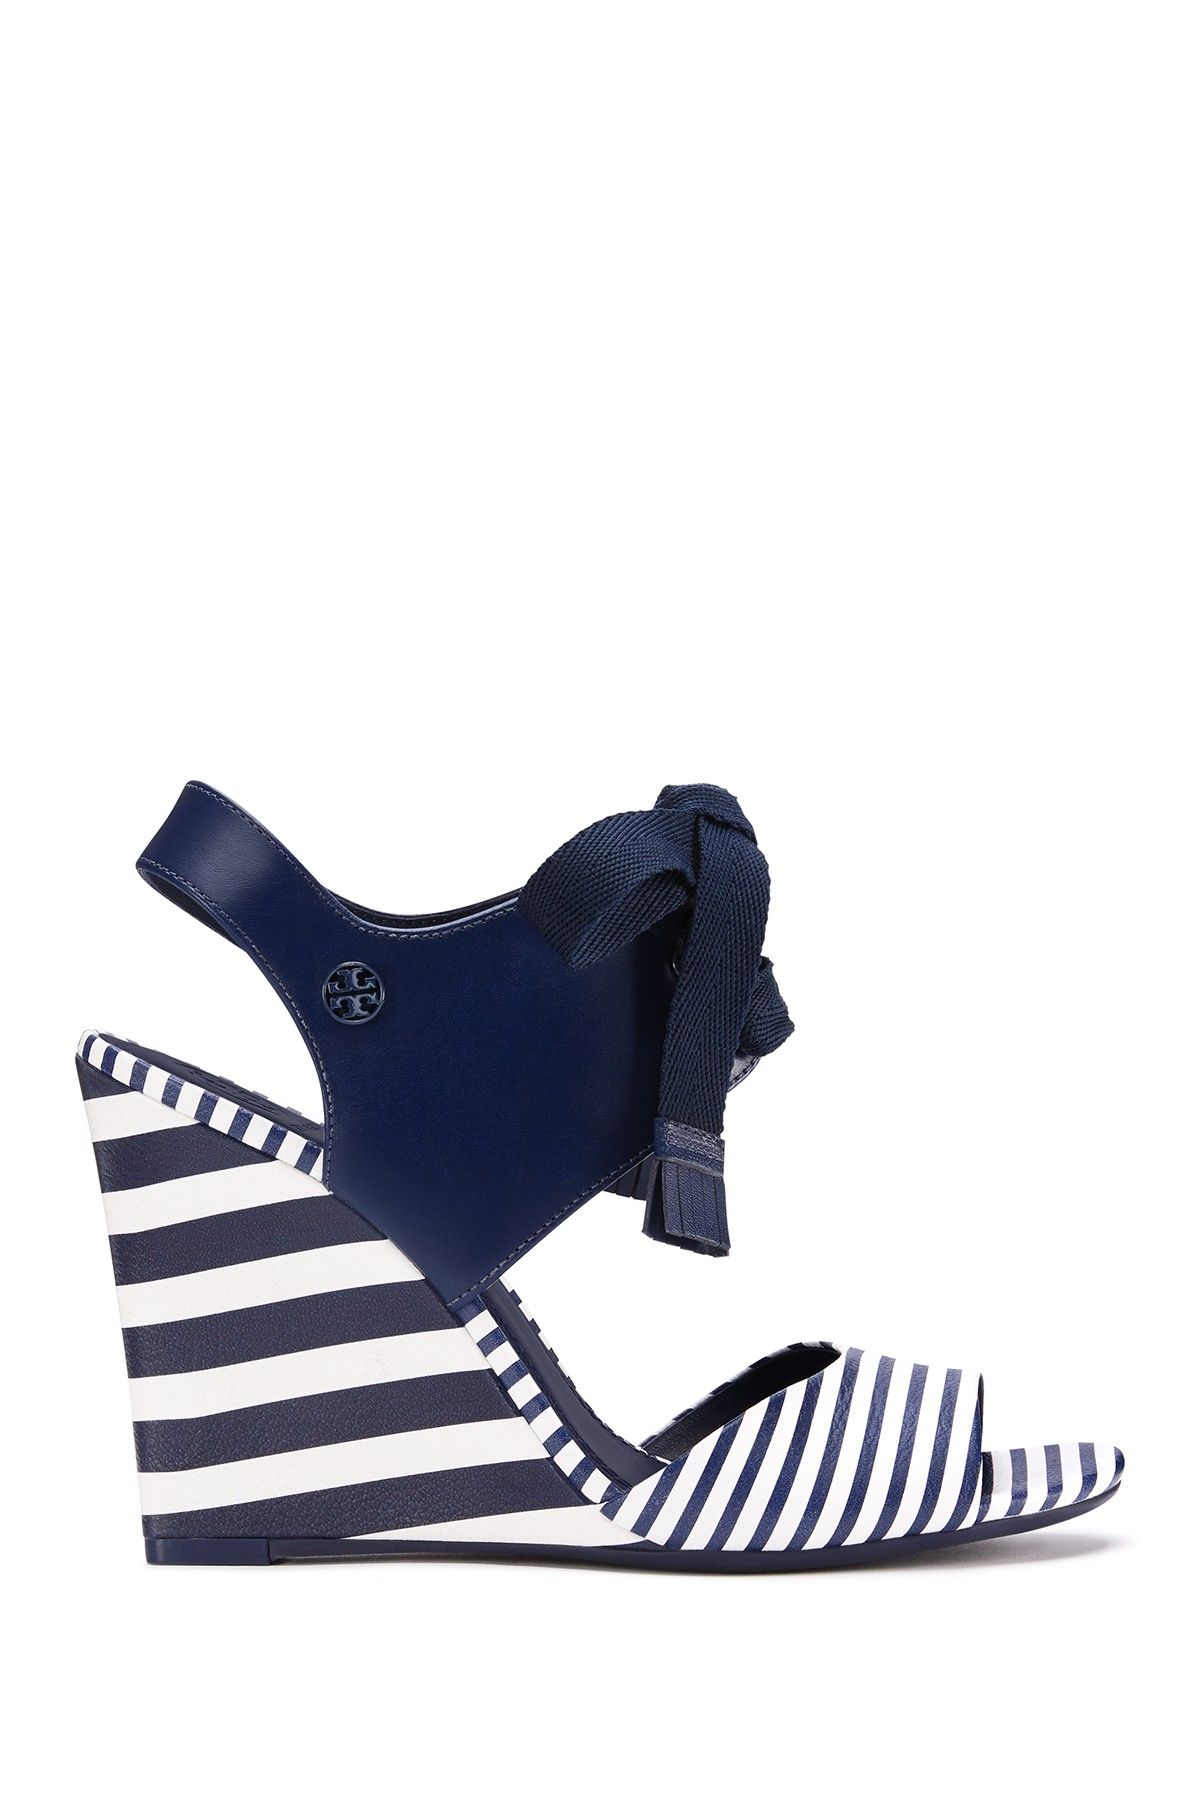 c67ef1380777 Tory burch maritime stripe wedge sandal is now off free shipping on orders  over jpg 1200x1800